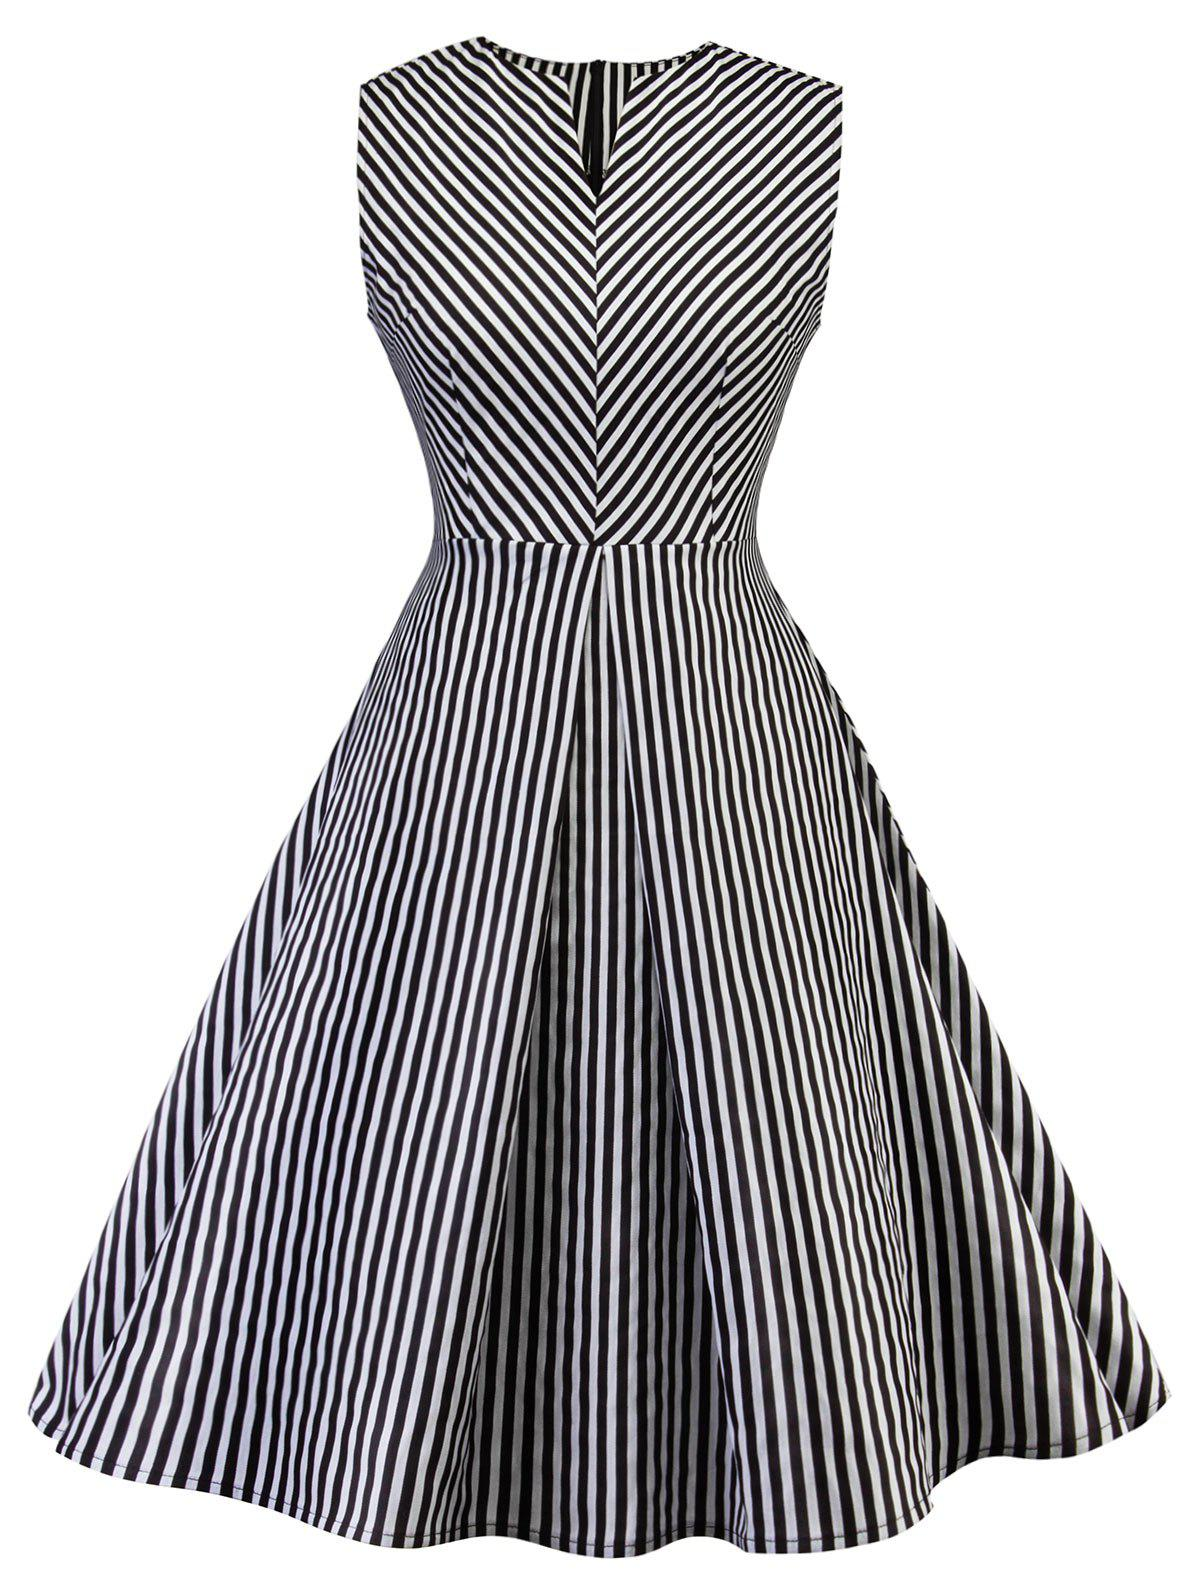 New Vintage Stripe Pin Up Dress